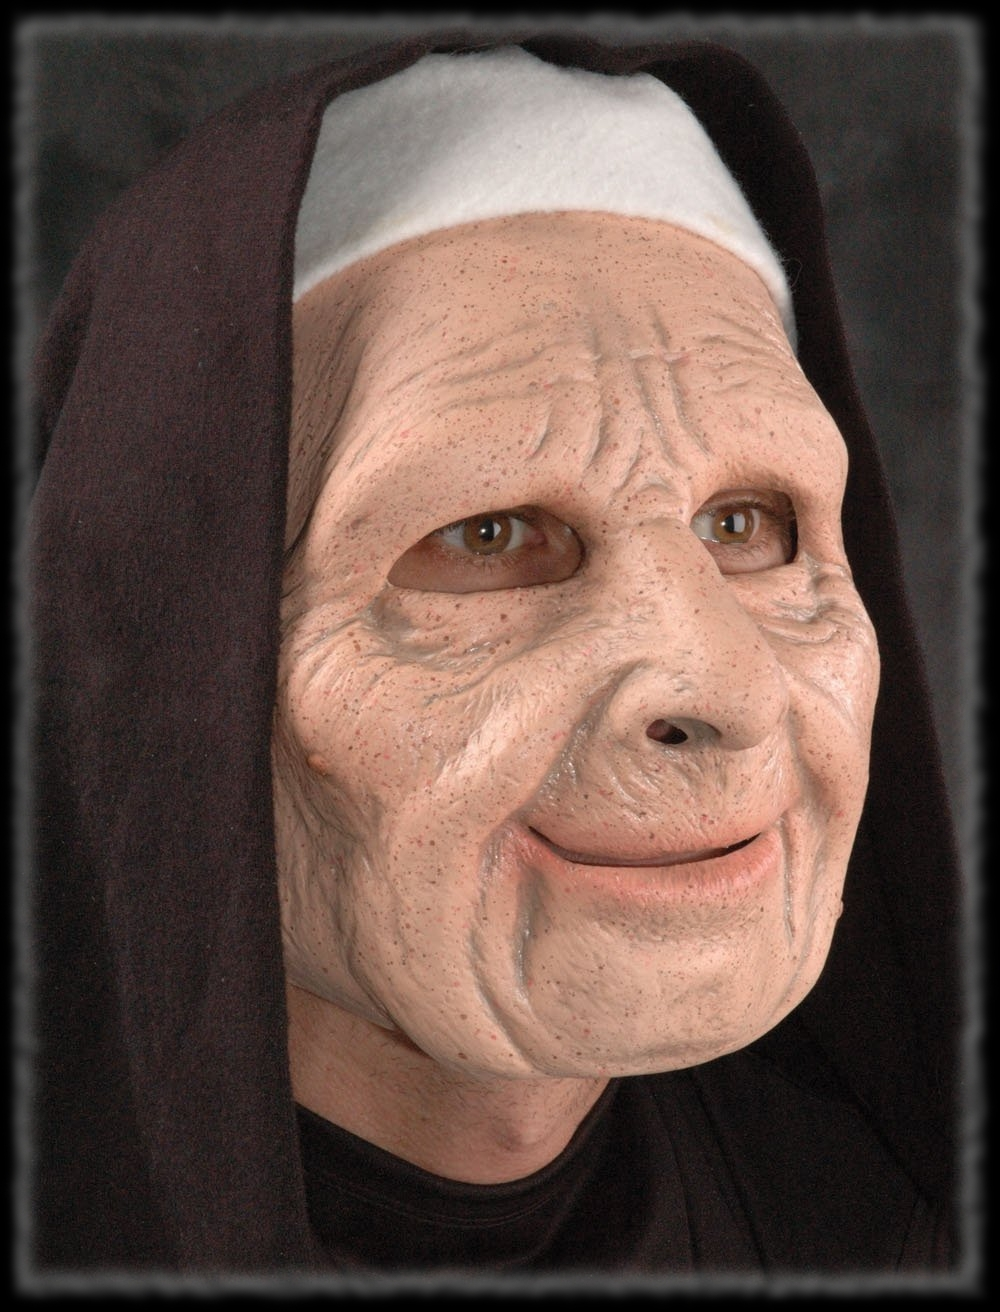 Old Nun Mask for Halloween Graveyard Party Ideas